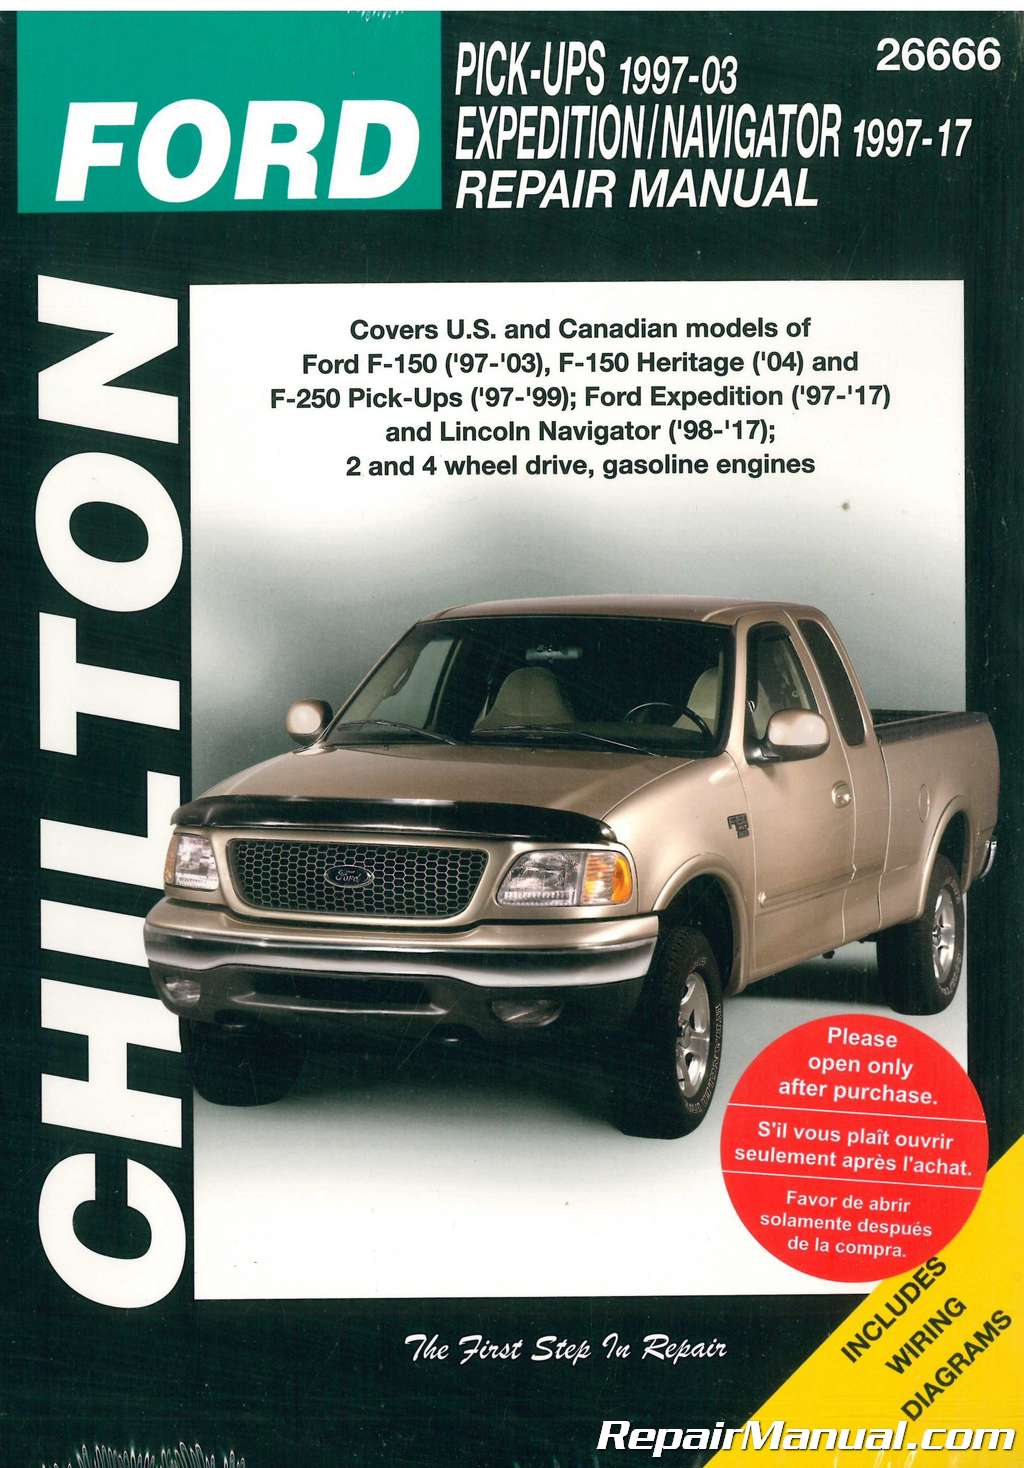 Chilton-Ford-Ford-Pick-Ups-1997-2003-Ford- ...